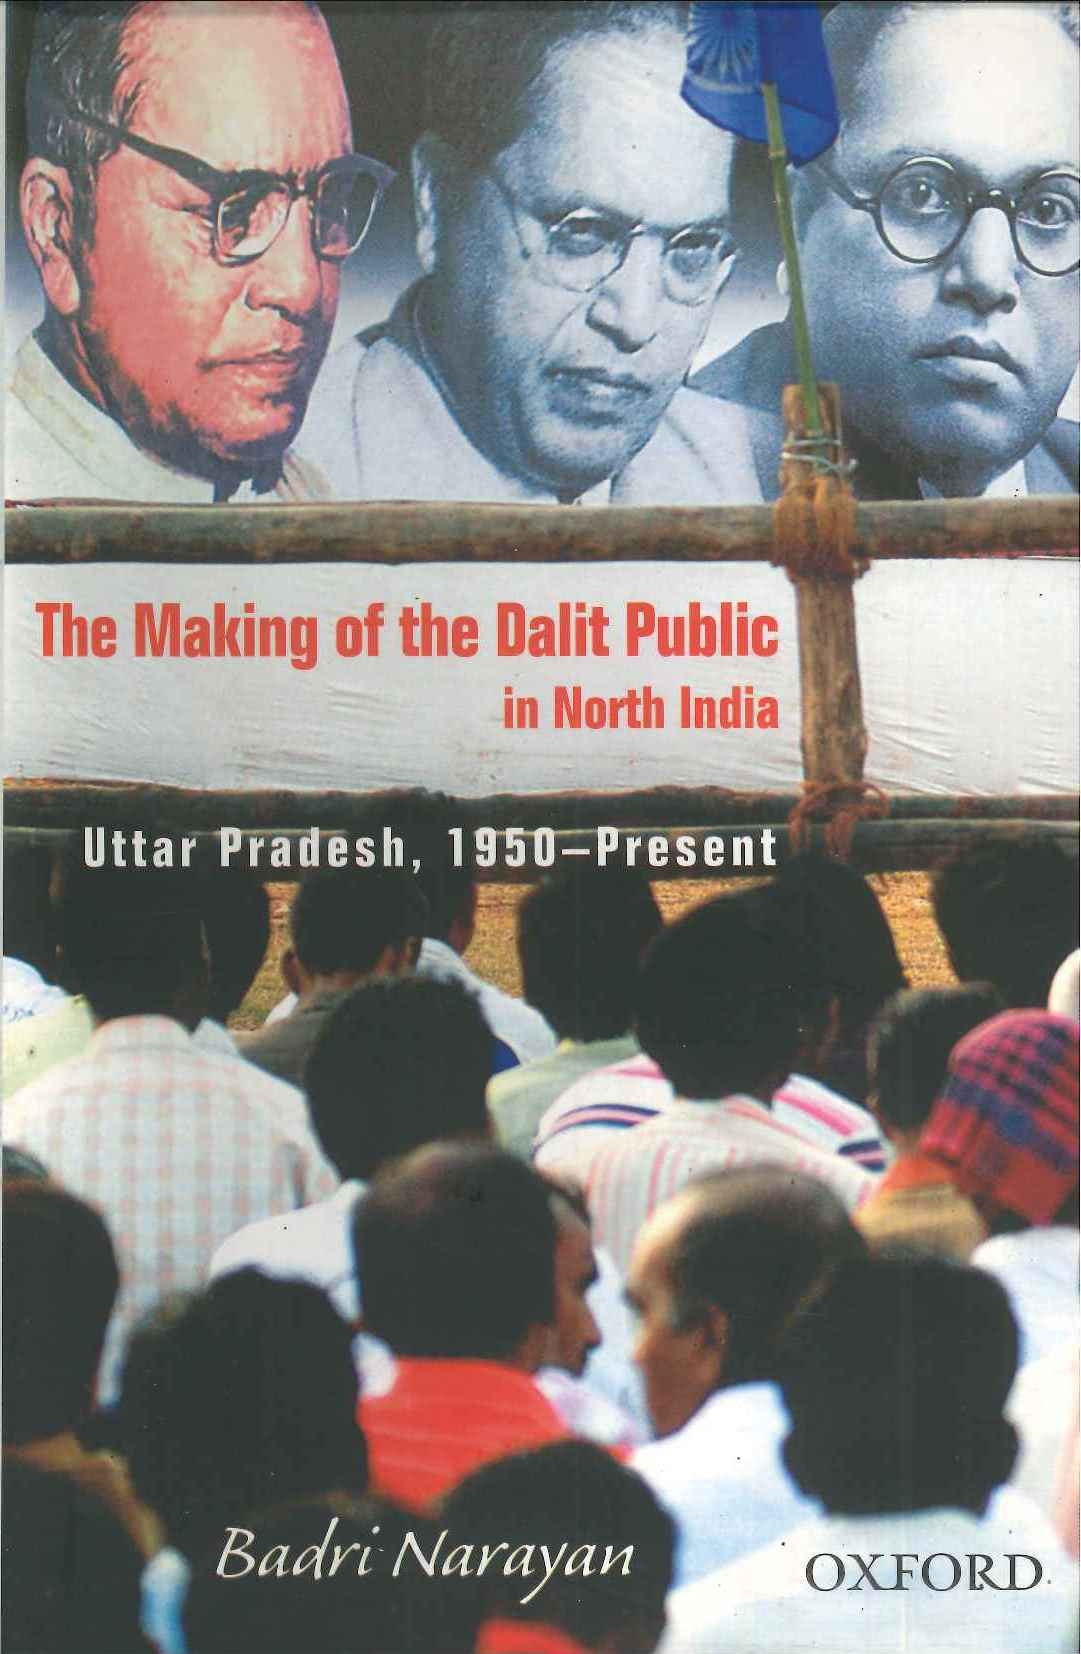 The Making of the Dalit Public in North India